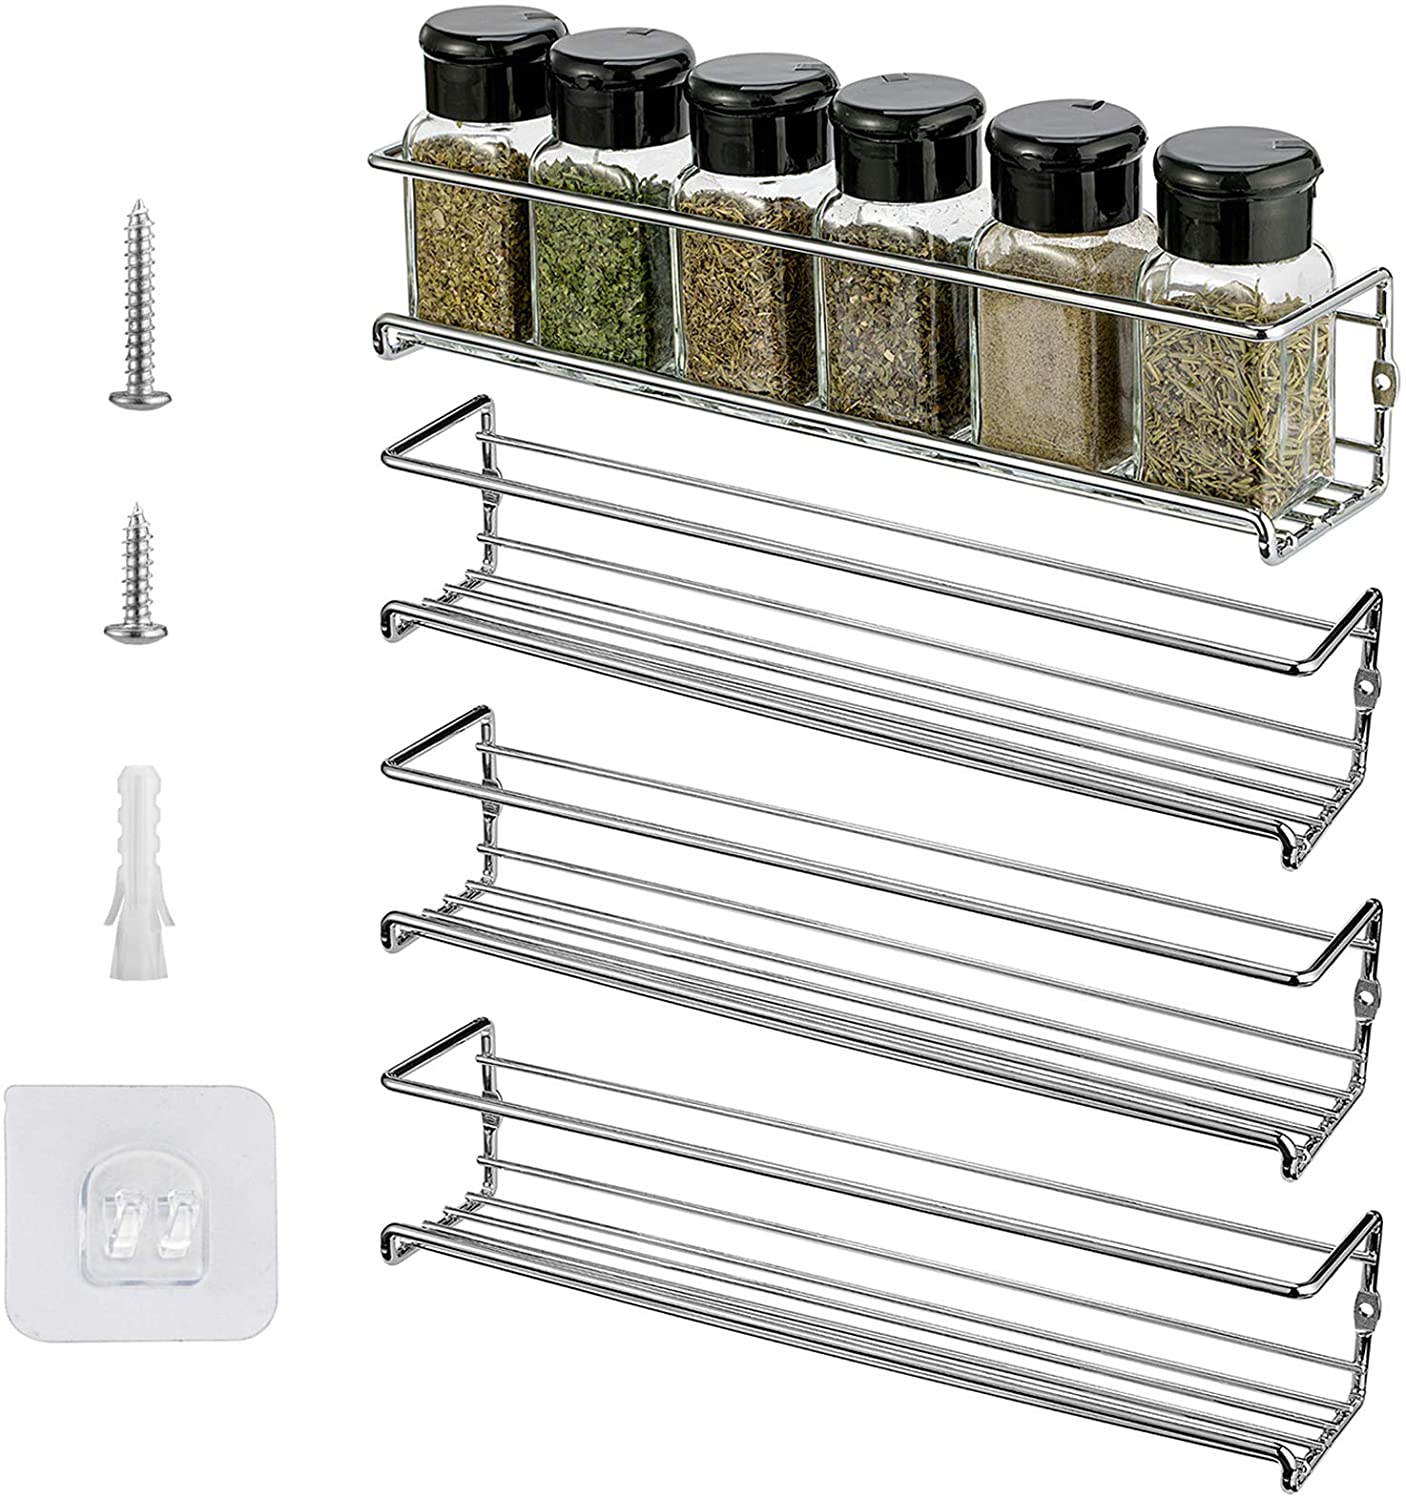 X Chef Spice Rack Wall Mount 4, Spice Rack For Kitchen Cabinet Door